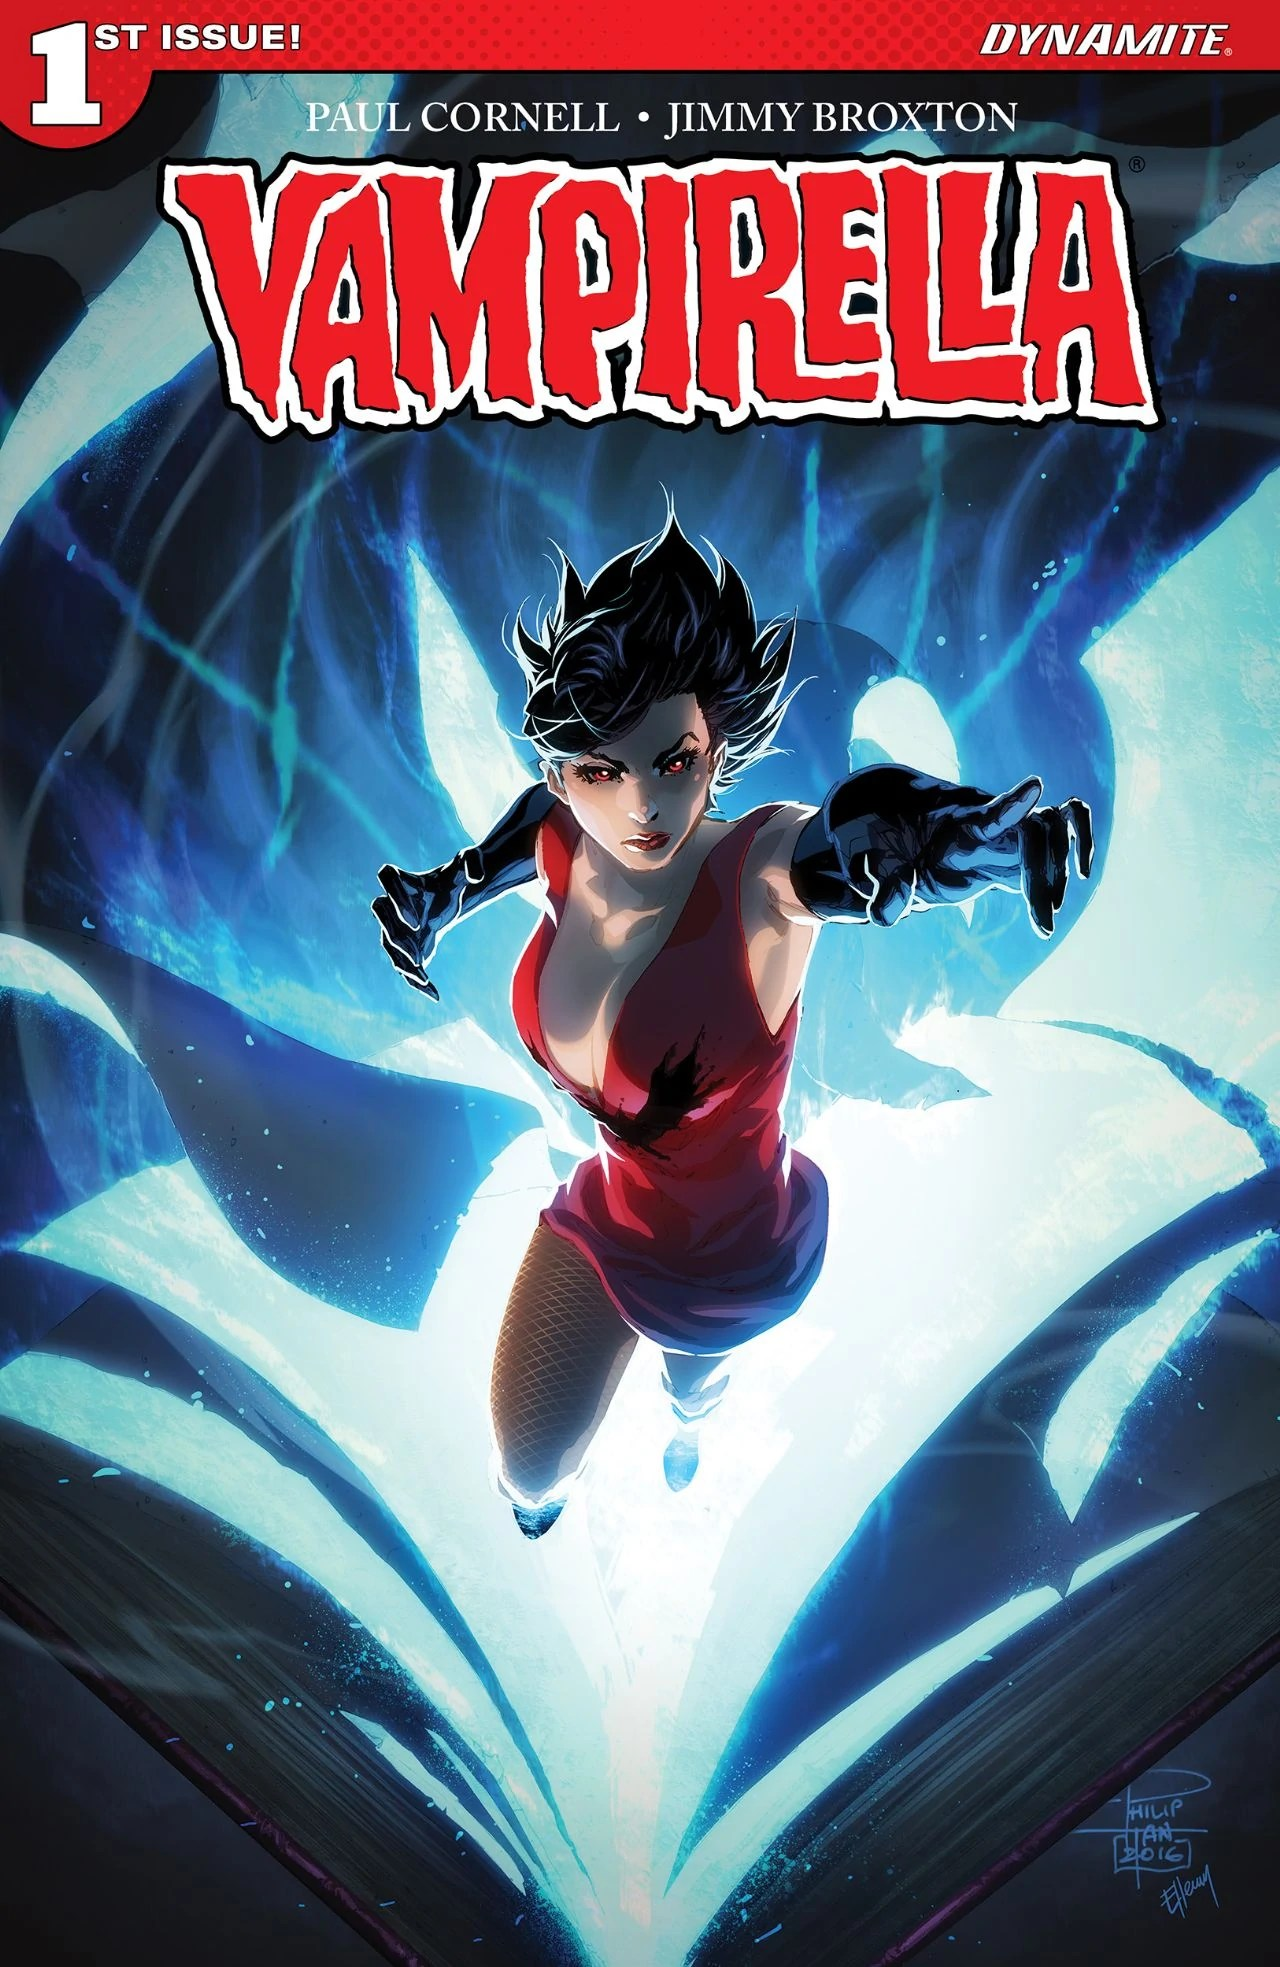 Vampirella  Comic Book Series  FANDOM powered by Wikia